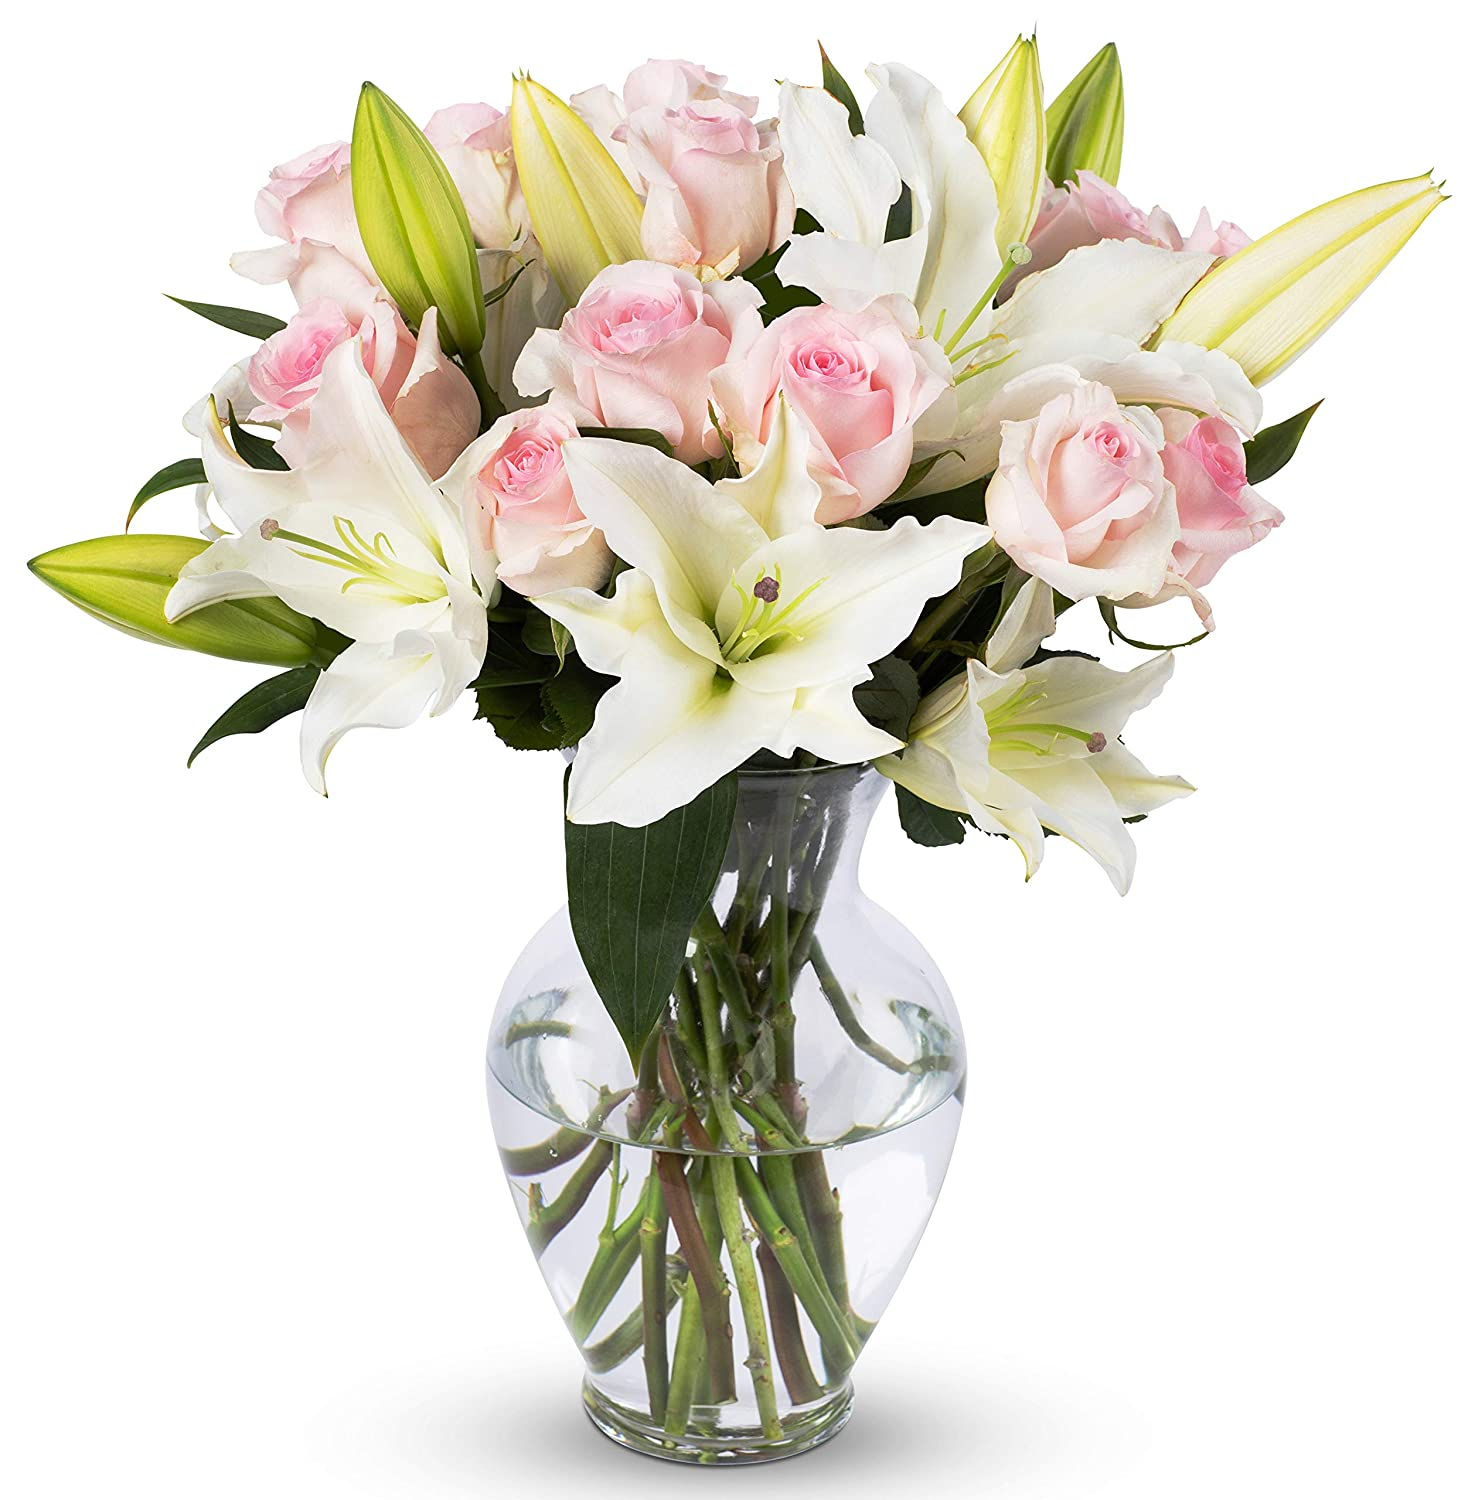 Amazon.com  Benchmark Bouquets Light Pink Roses and White Oriental Lilies With Vase (Fresh Cut Flowers)  Grocery \u0026 Gourmet Food  sc 1 st  Amazon.com & Amazon.com : Benchmark Bouquets Light Pink Roses and White Oriental ...